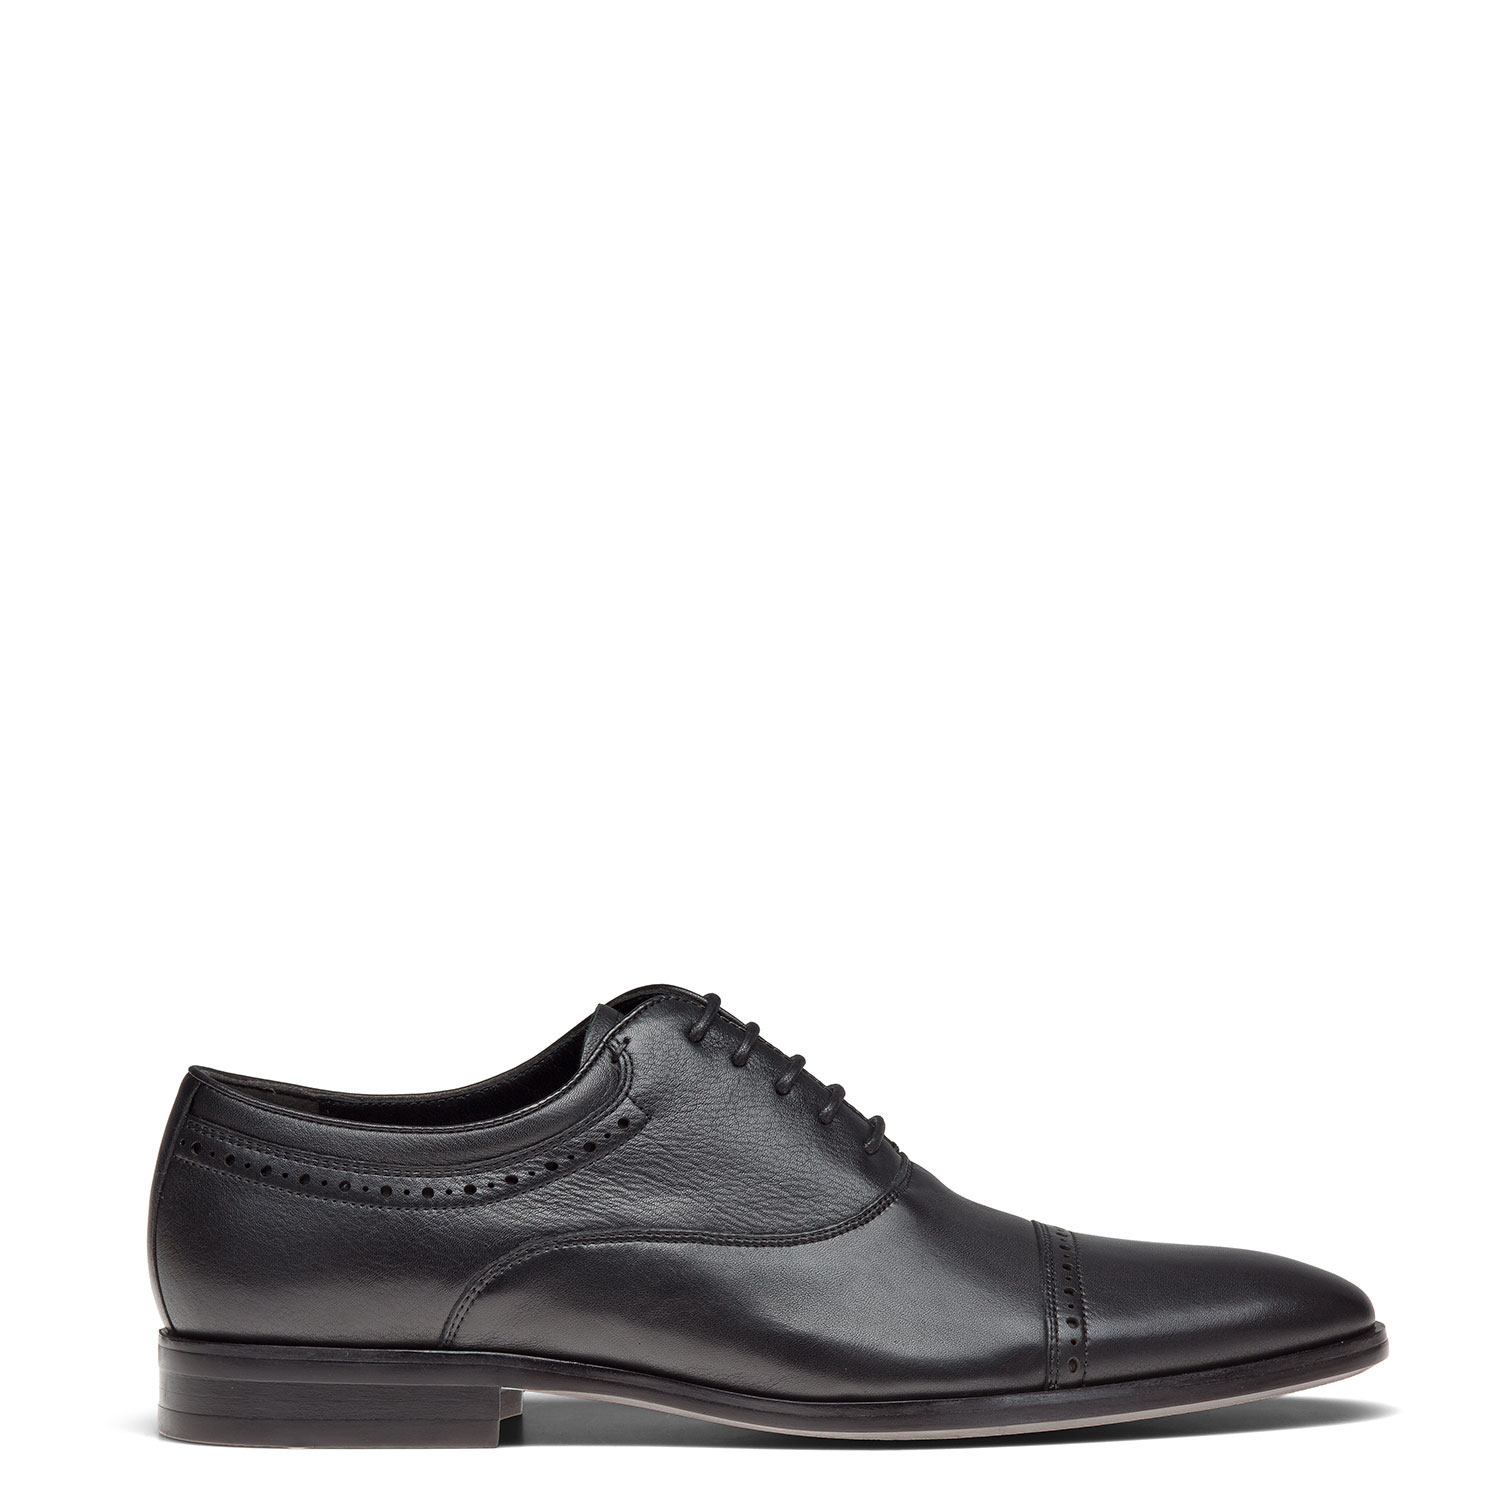 Men's shoes CARLO PAZOLINI HM-DEN10-1